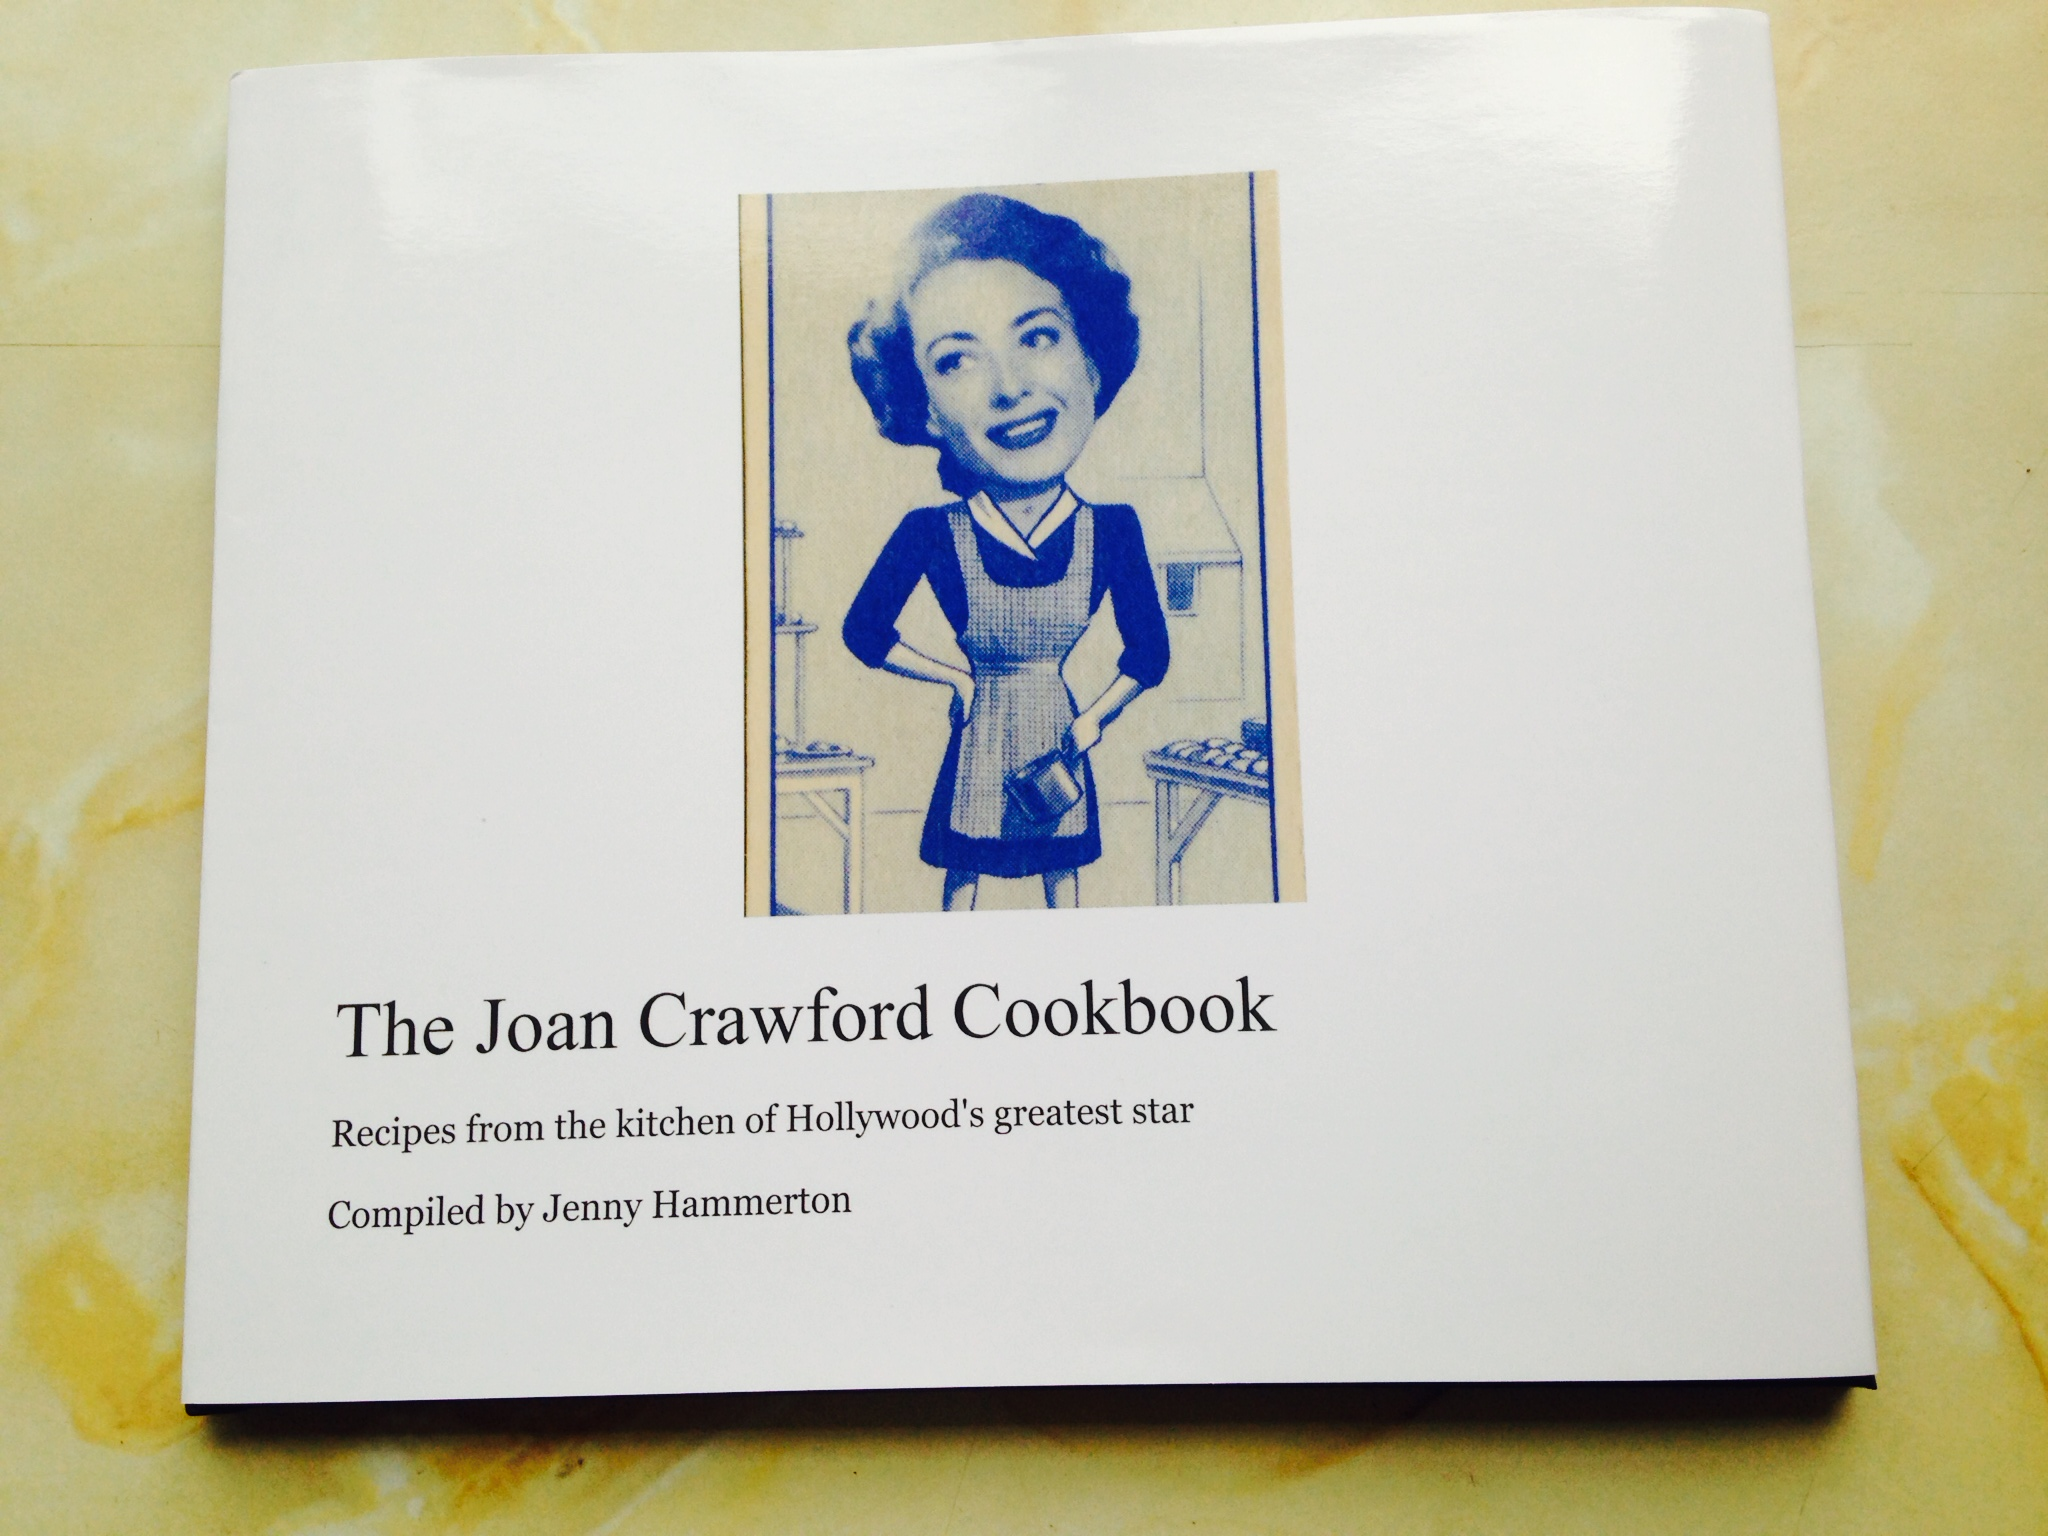 The Joan Crawford Cookbook Prototype!